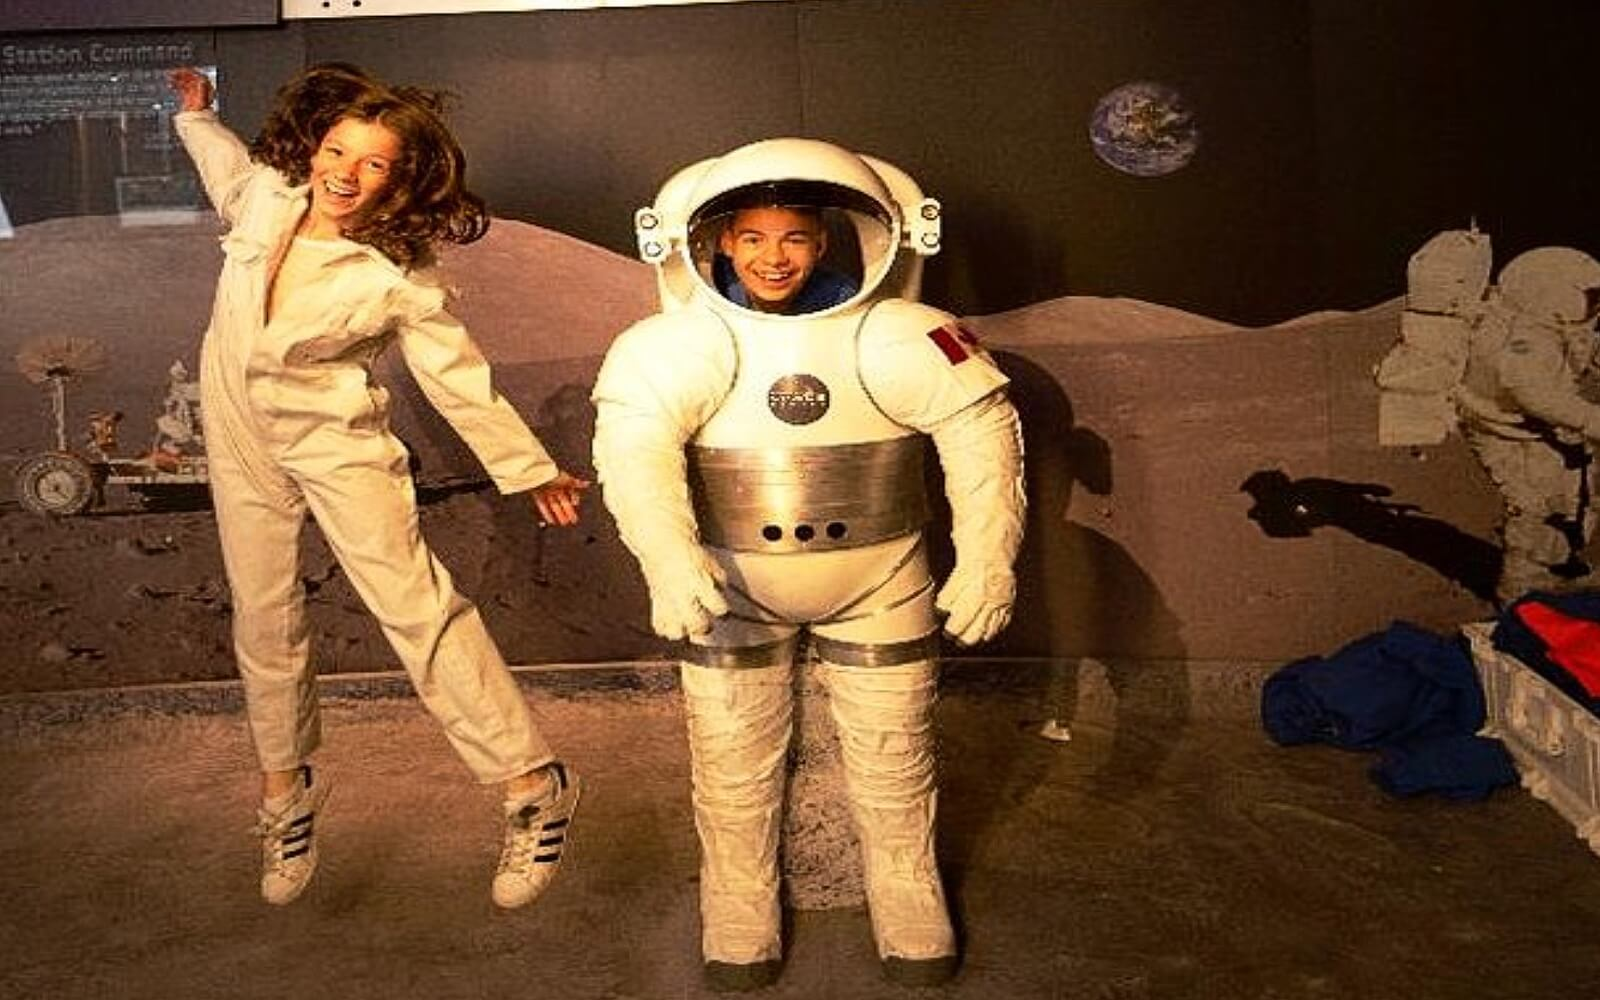 Children dressed up as astronauts